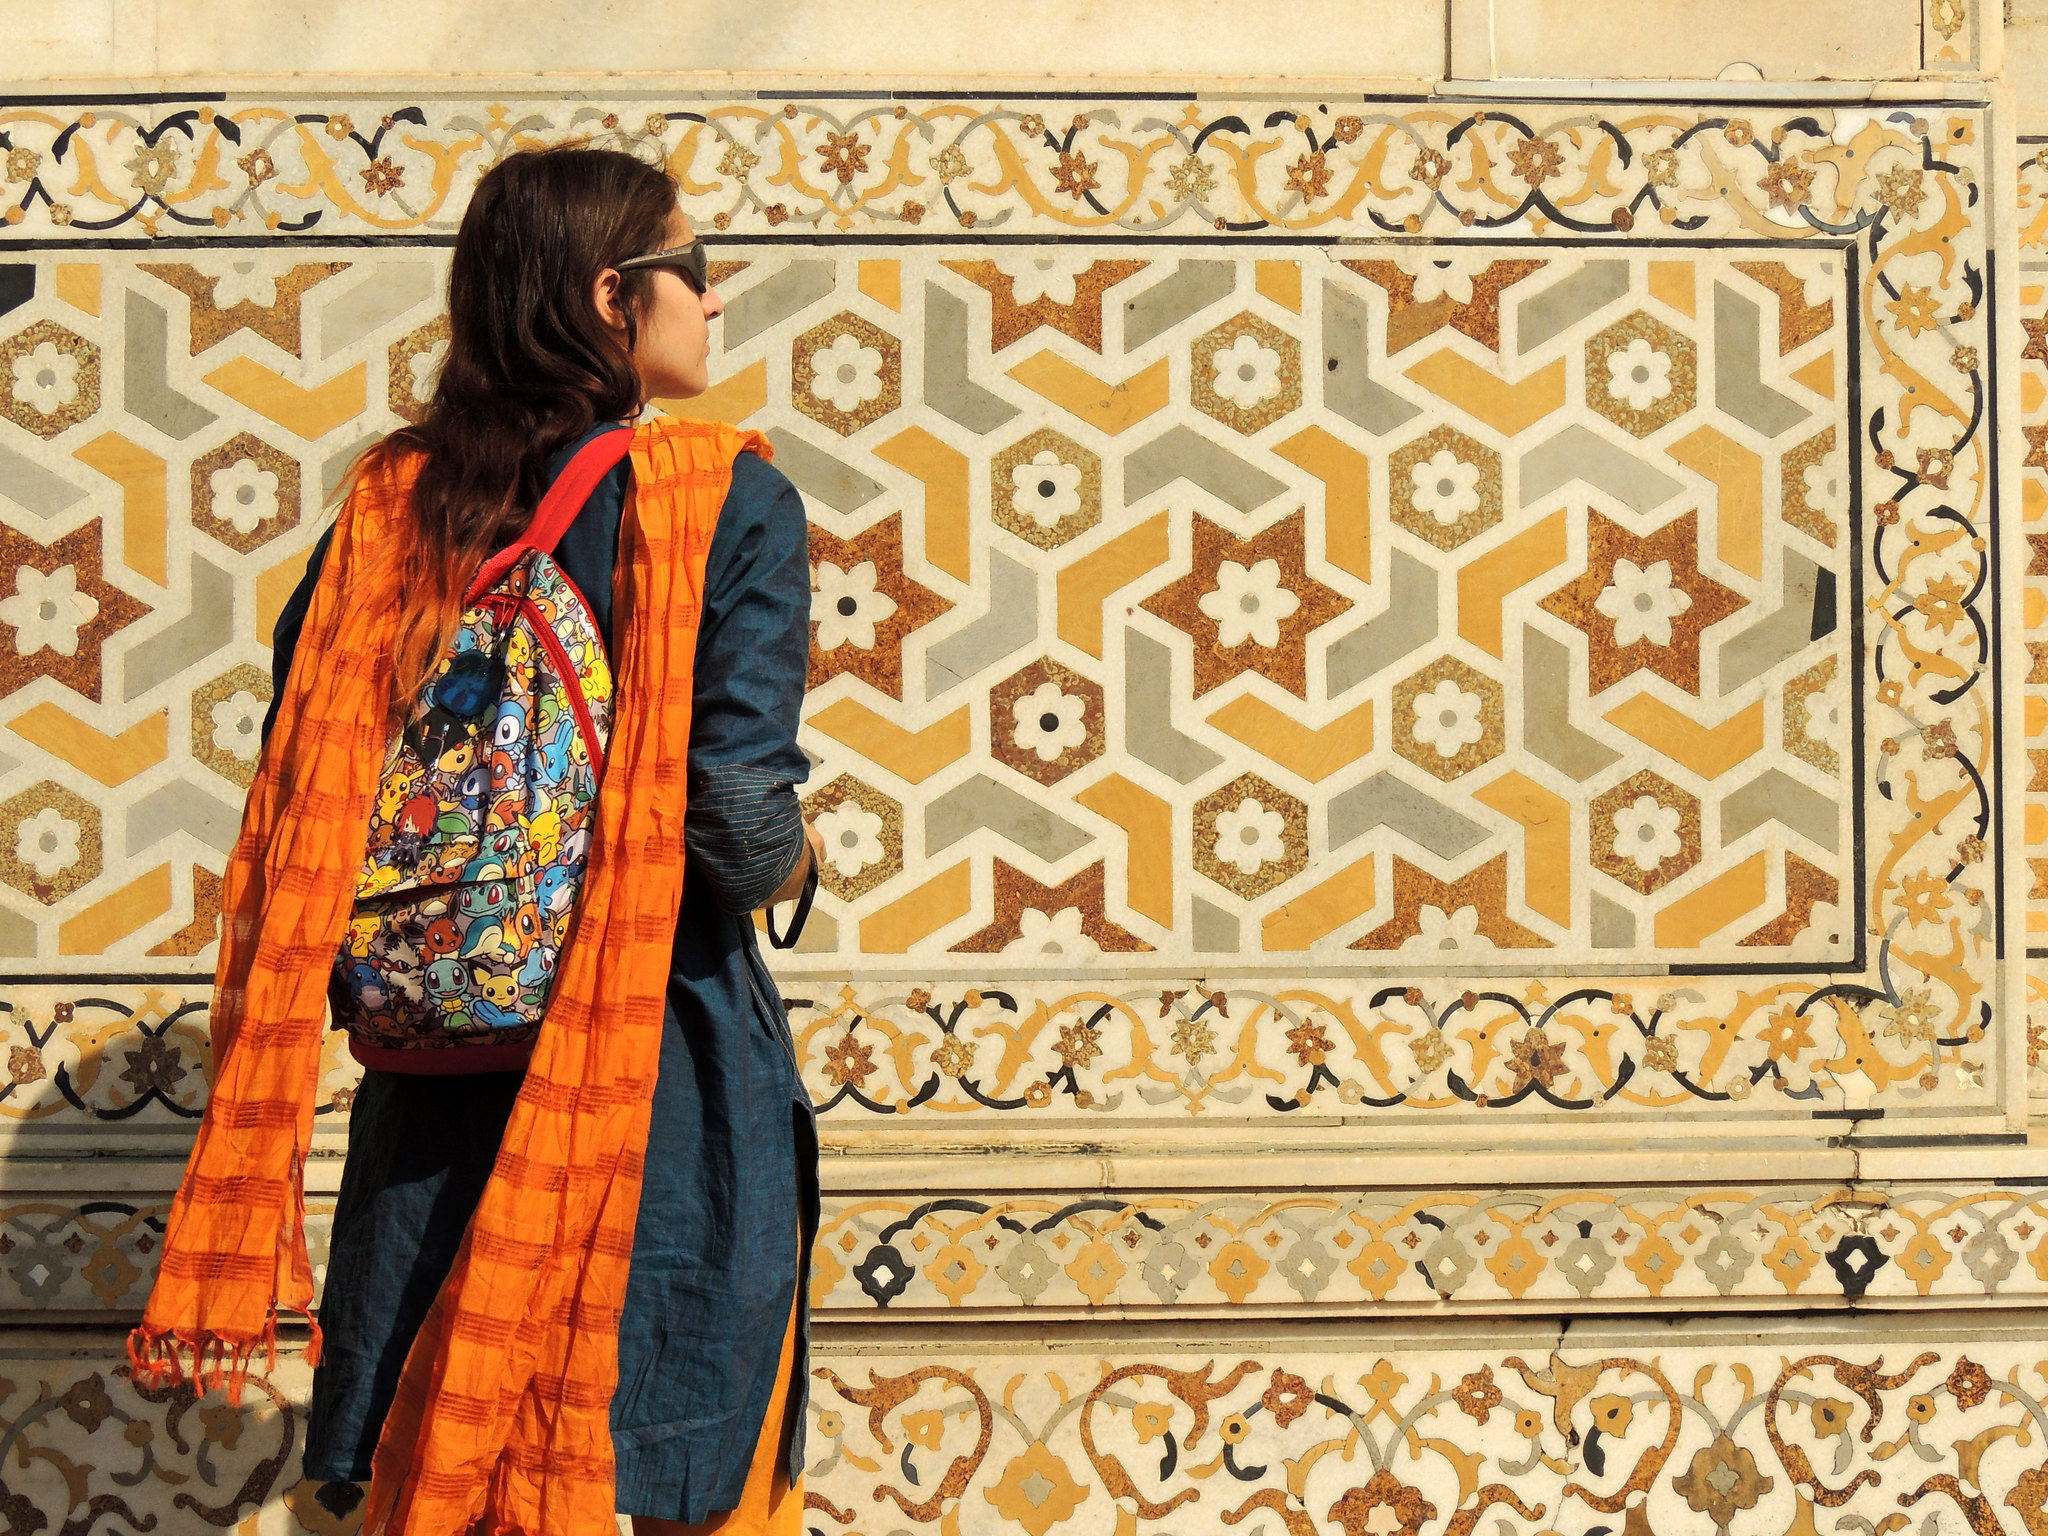 Image depicts a woman standing in front of a wall with geometric design marble inlay, at the Tomb of I'Timad-Ud-Daulah.